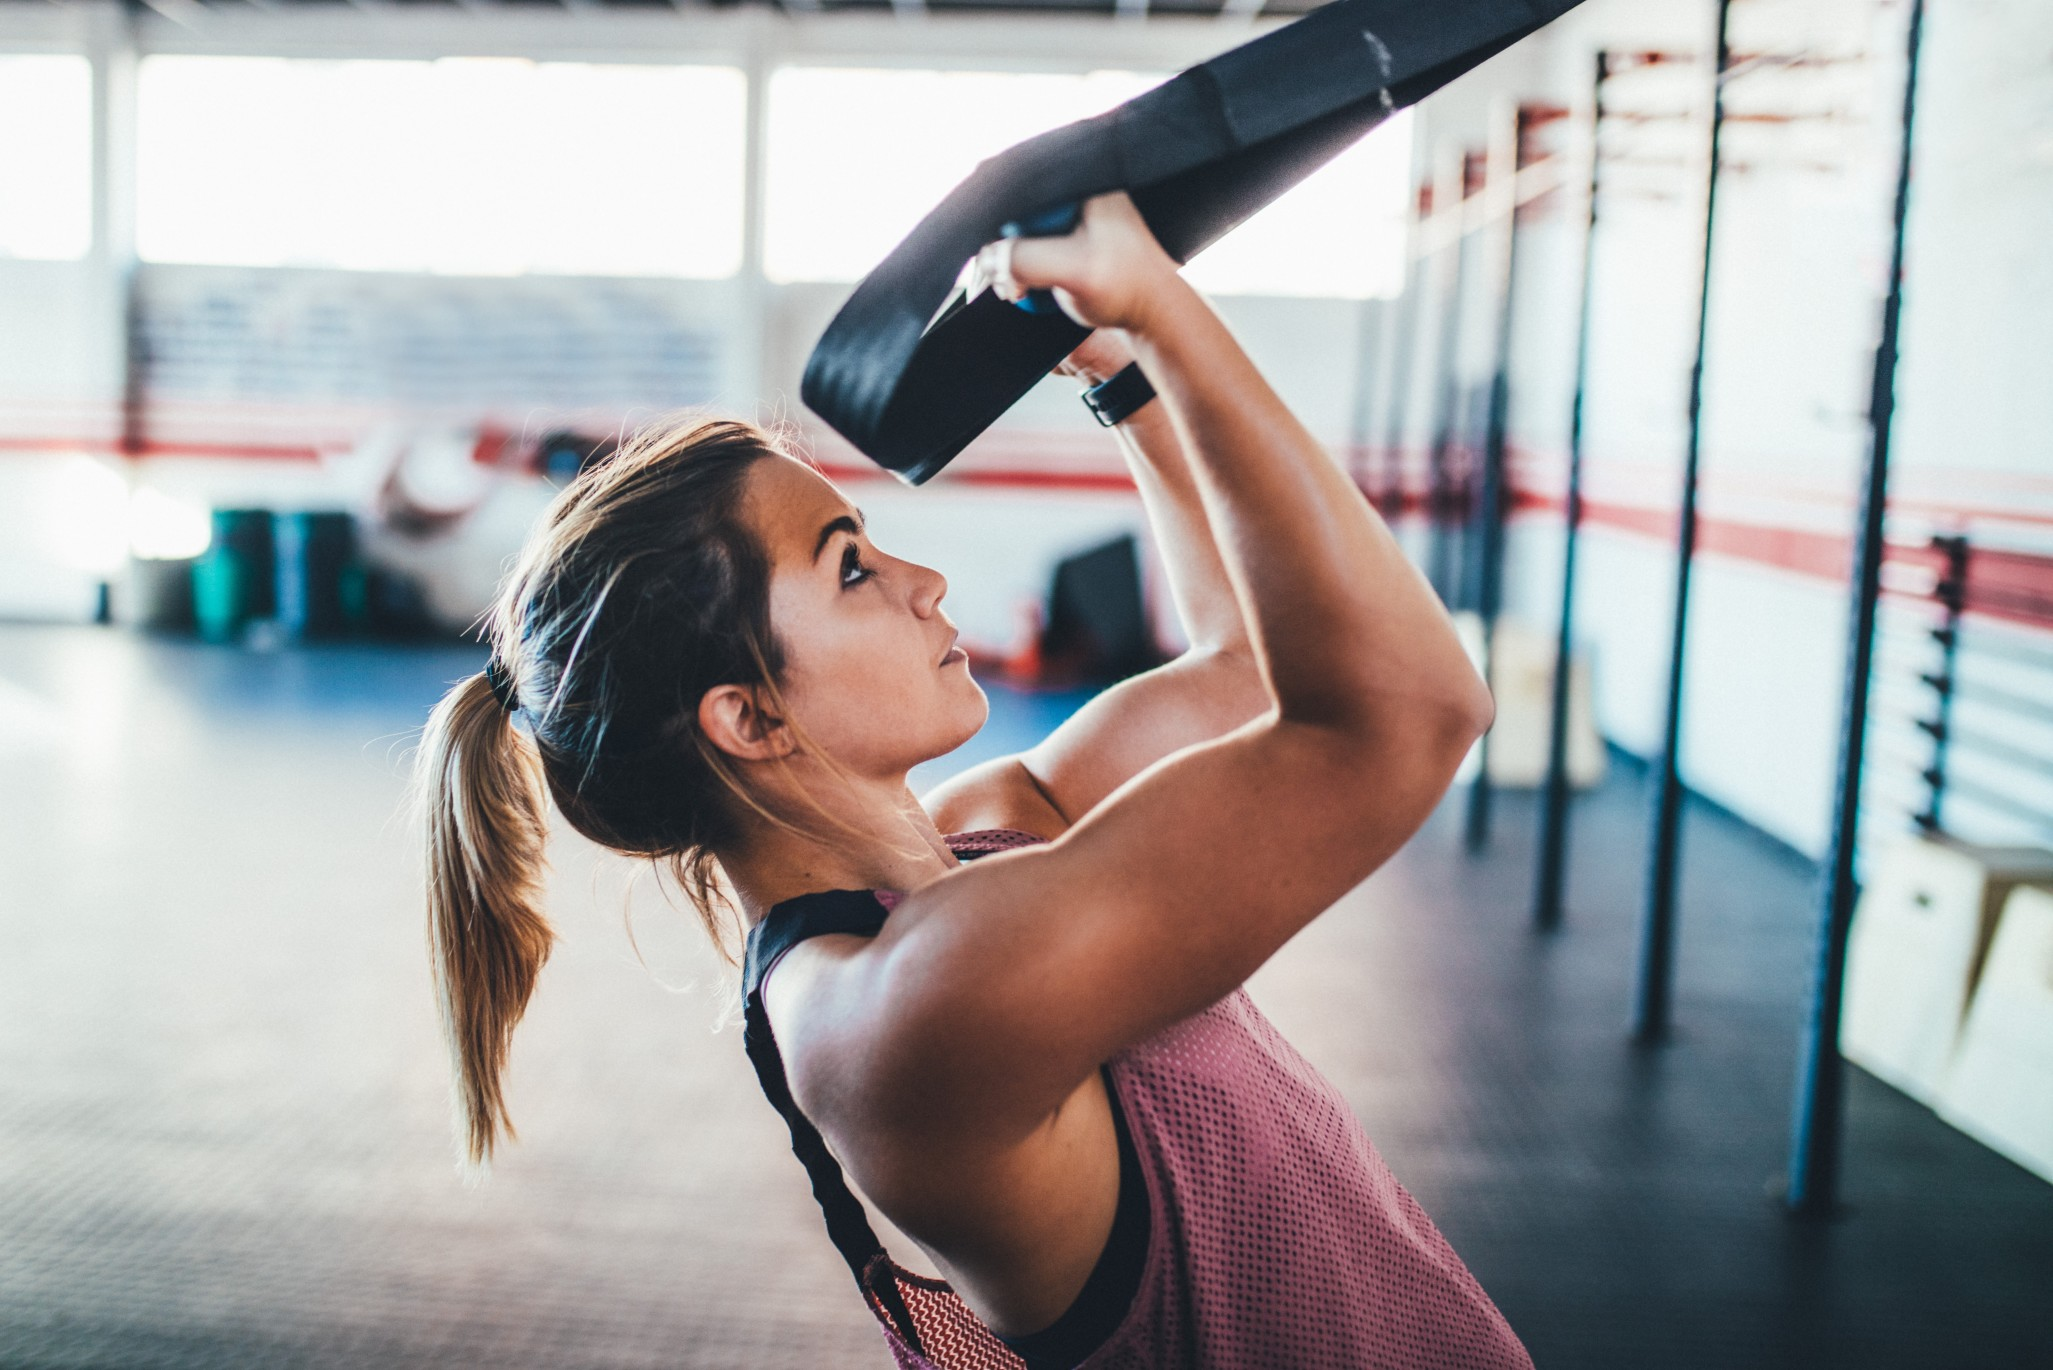 Exercise Classes And Fitness Trends To Try In 2019 forecast